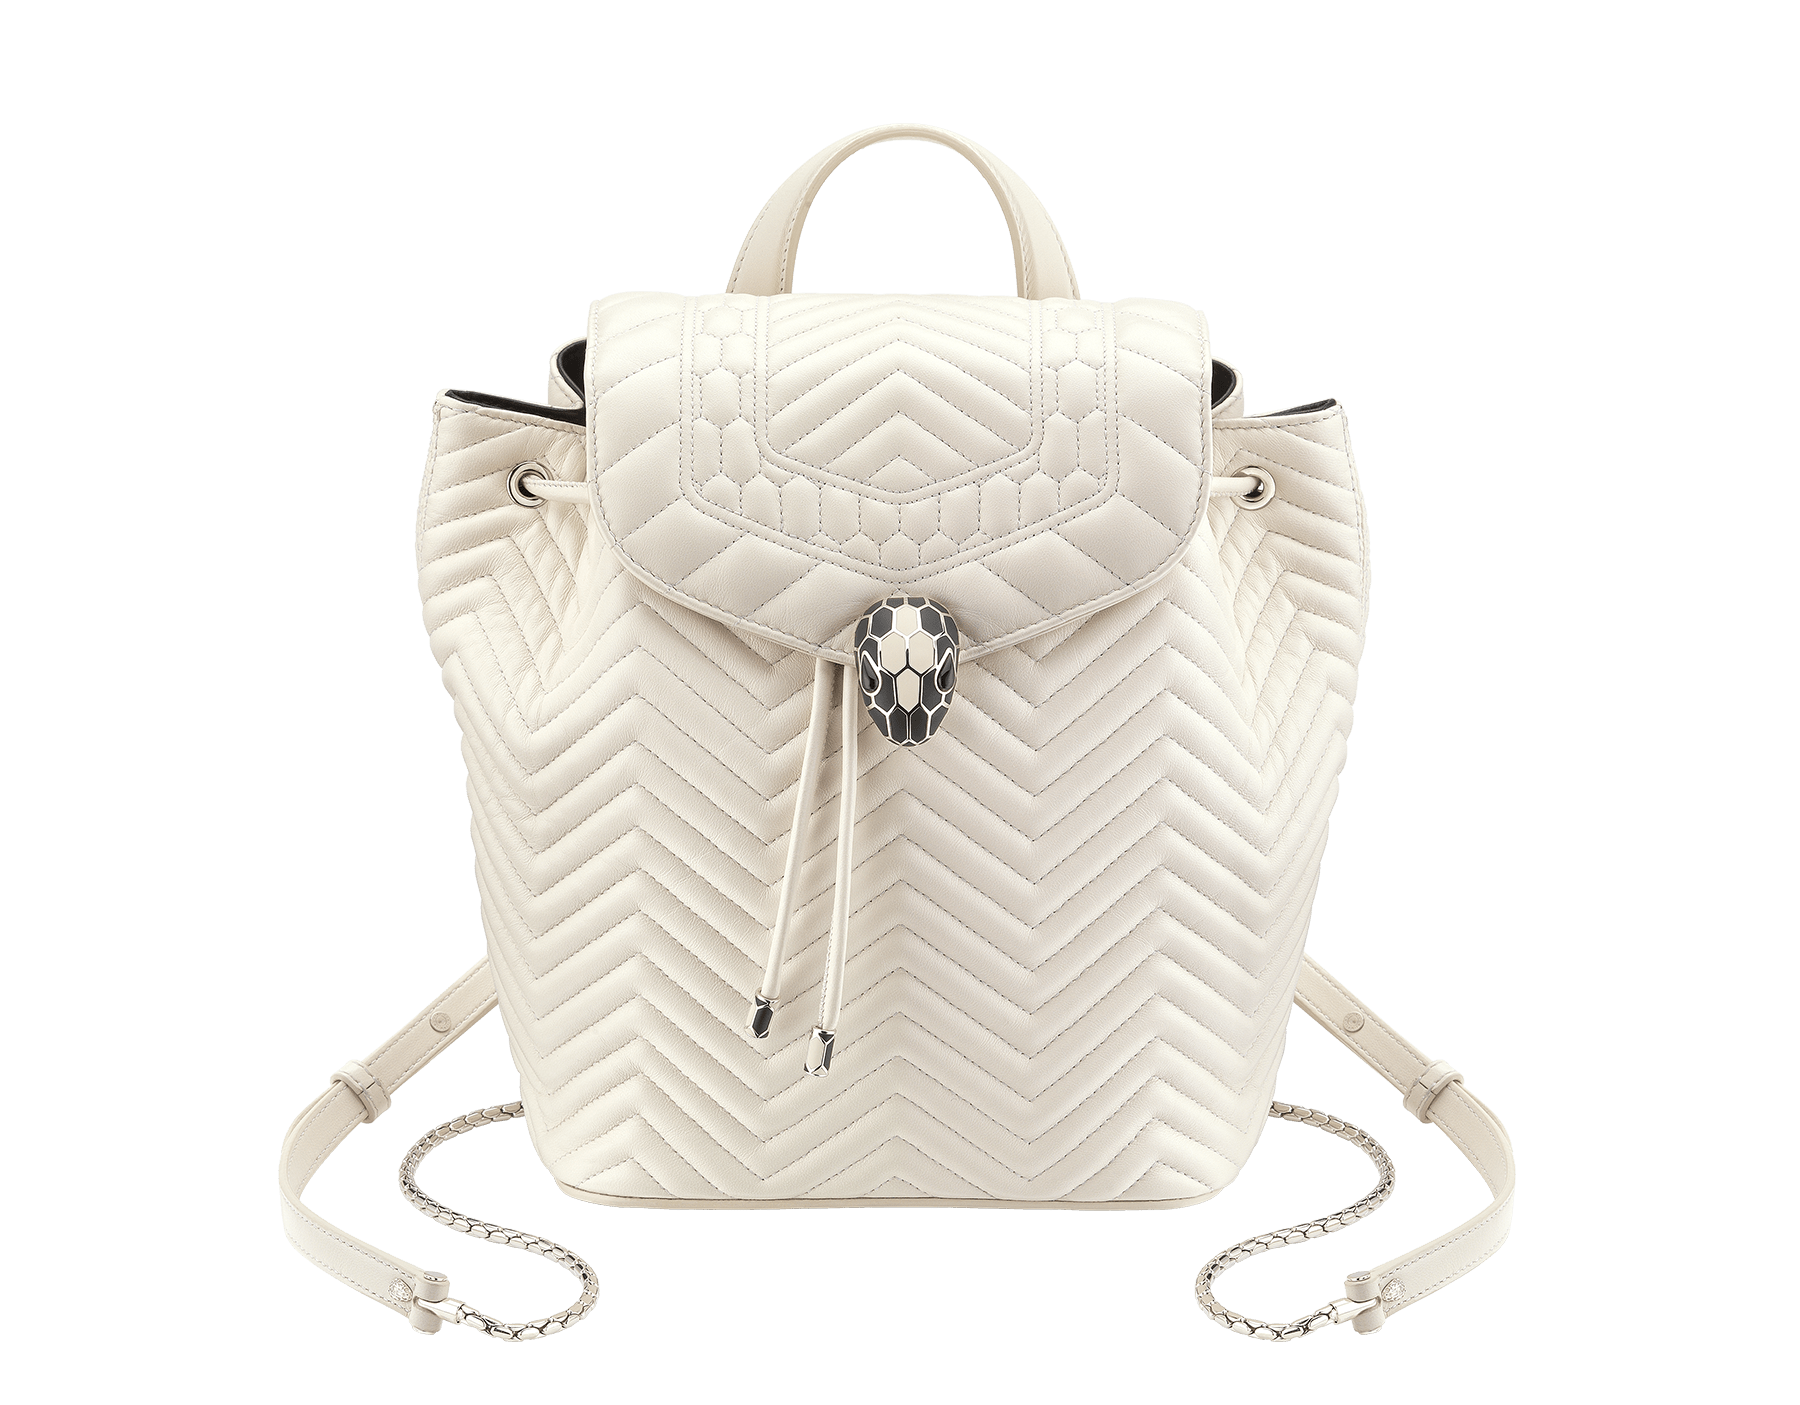 Backpack Serpenti Forever in white agate quilted nappa leather and black internal lining. Hardware in light gold plated brass and snakehead closure in matte black and white agate enamel, with eyes in black onyx. 286979 image 1